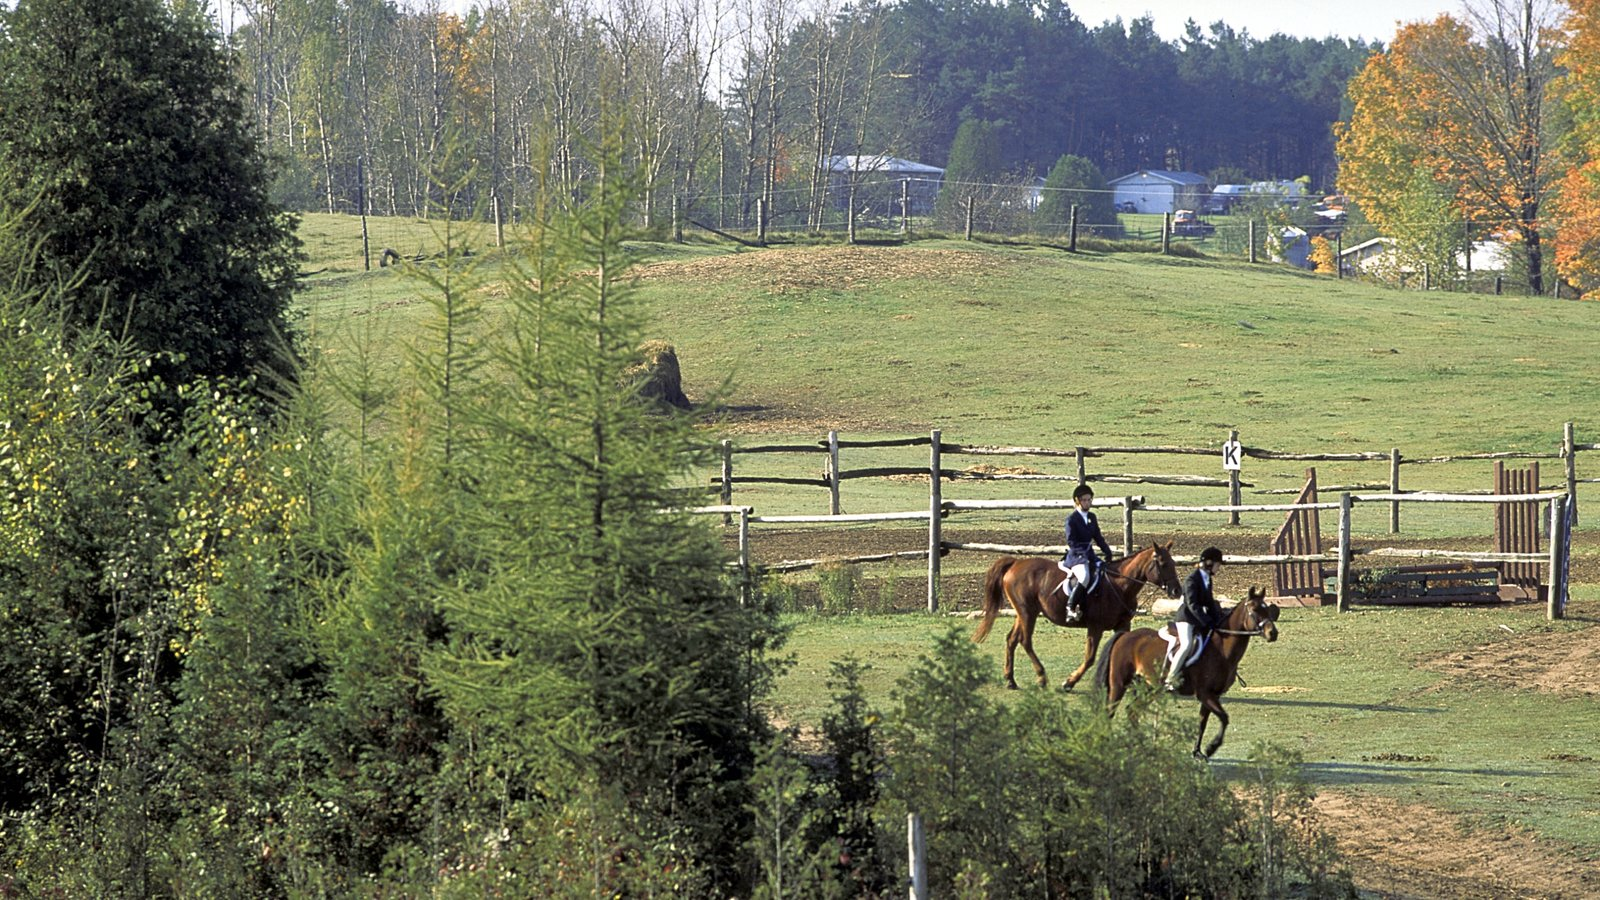 Unionville featuring forest scenes, farmland and horseriding